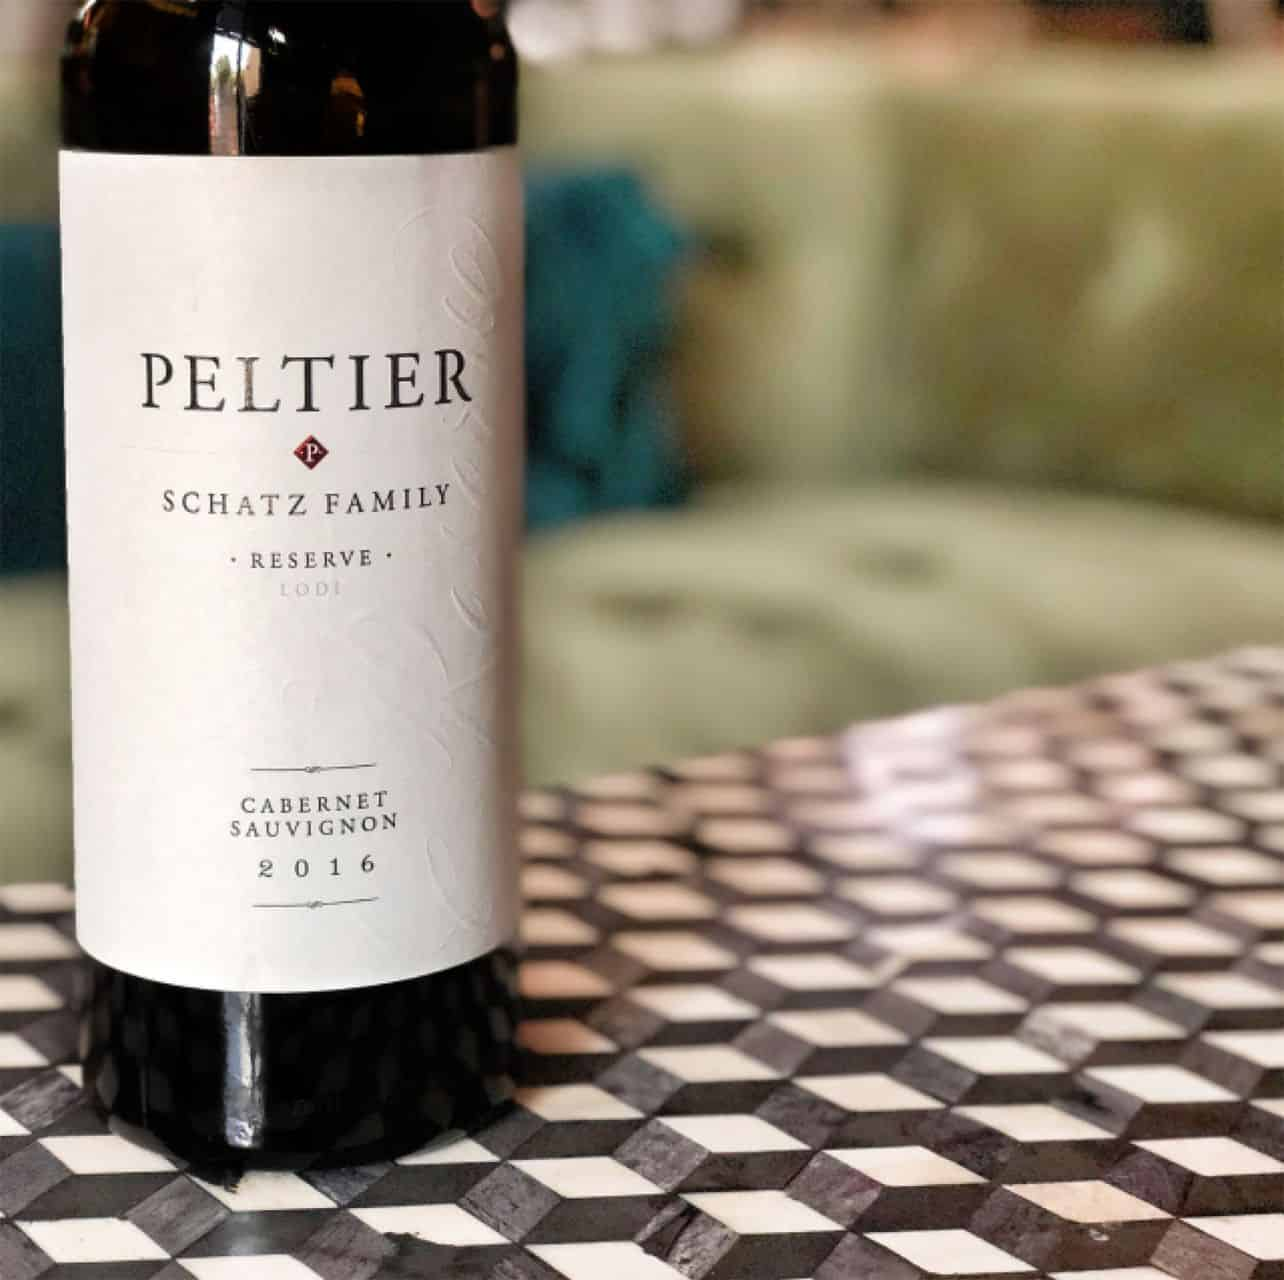 Bottle of Peltier Cabernet Sauvignon 2016